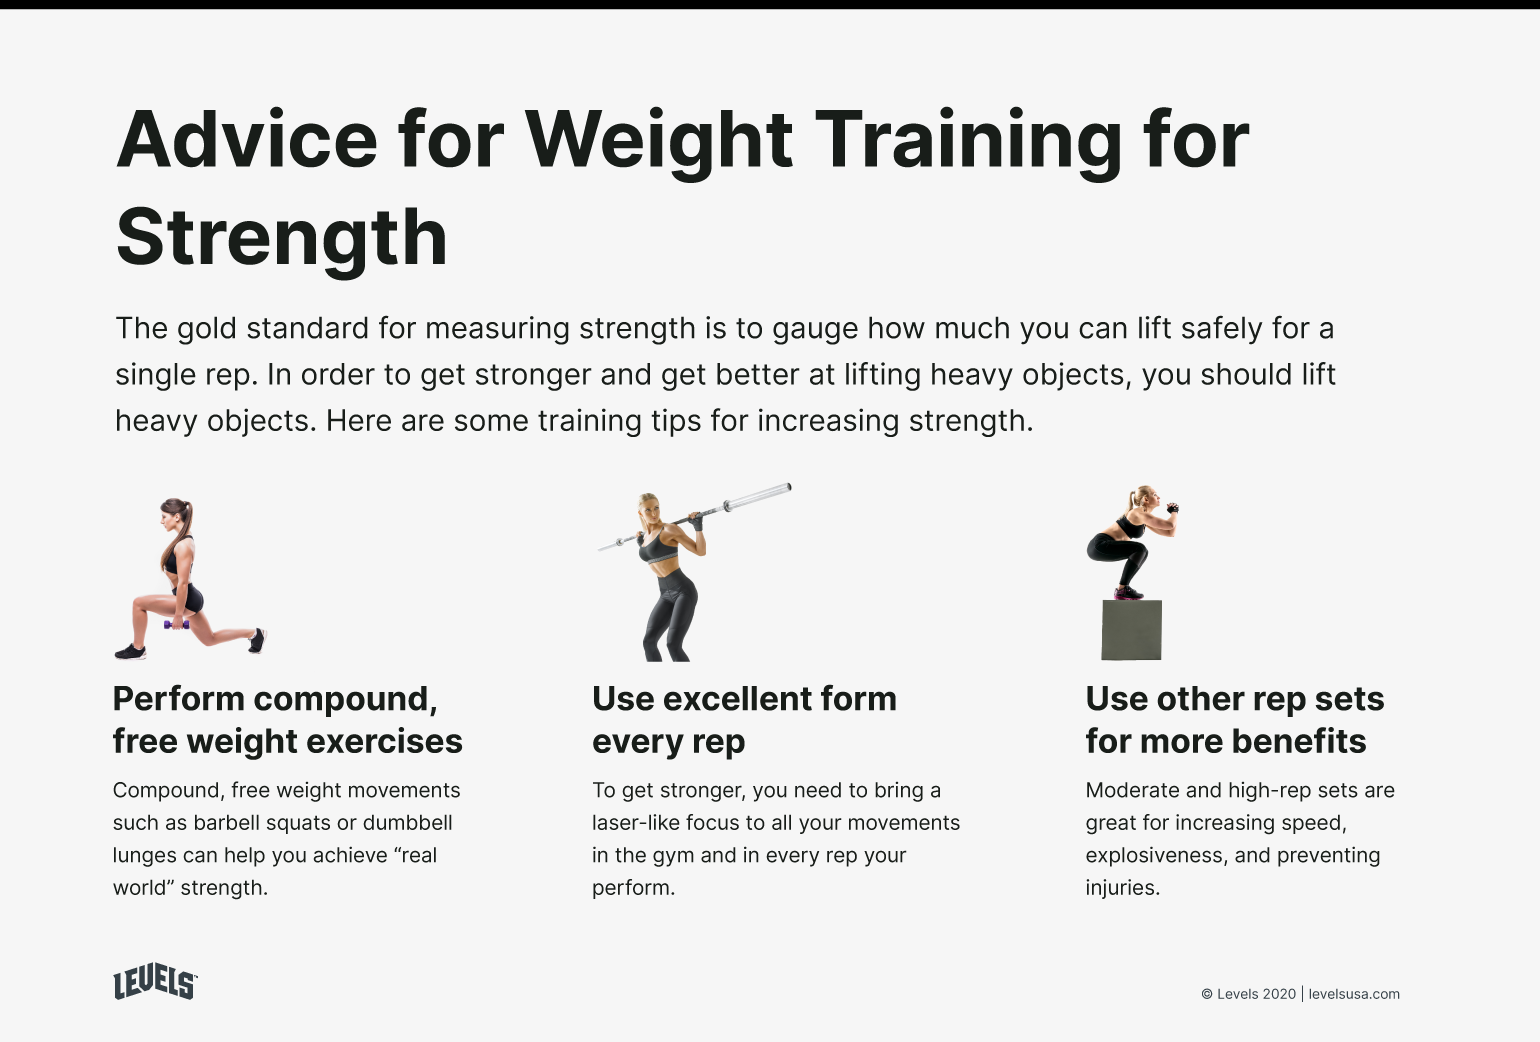 High Reps vs Low Reps - Advice For Weight Training For Strength Infographic